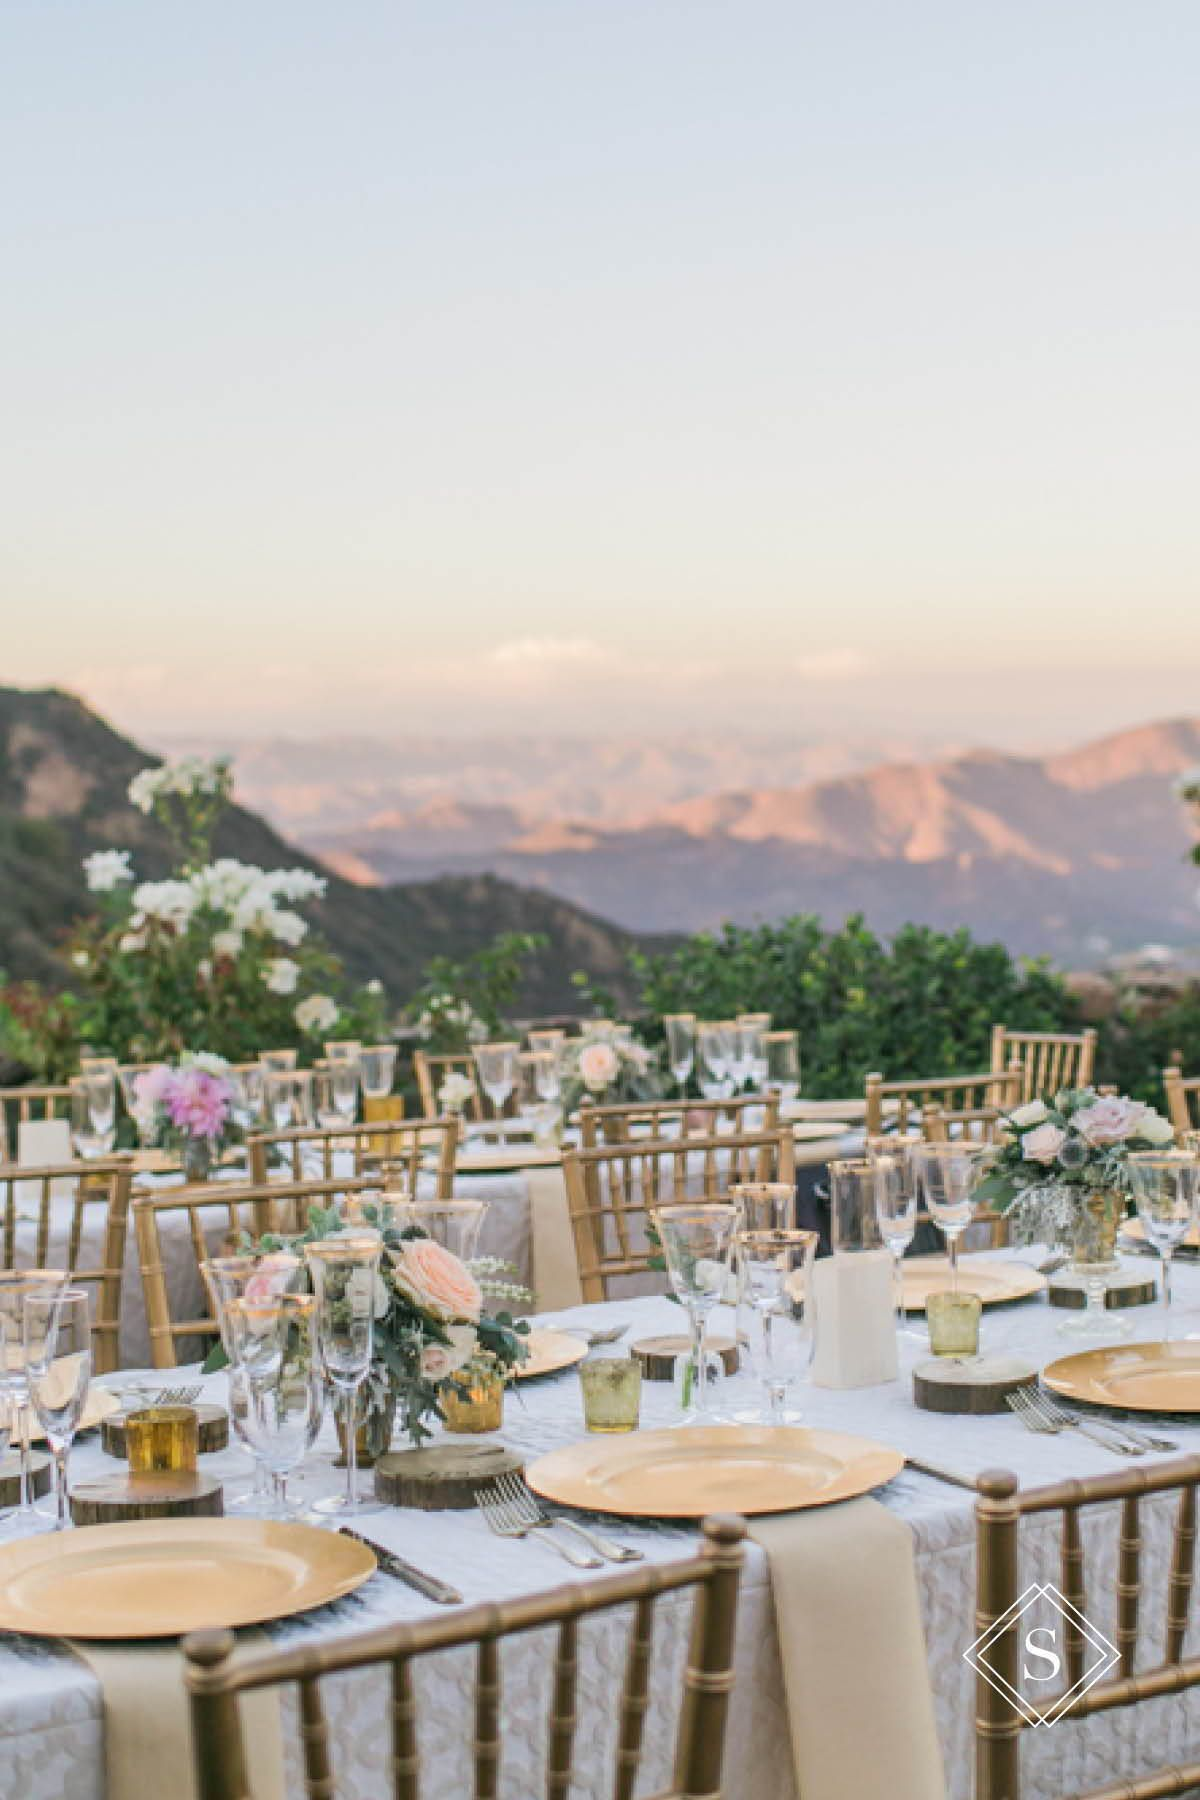 Top 20 Most Beautiful Wedding Venues in the US